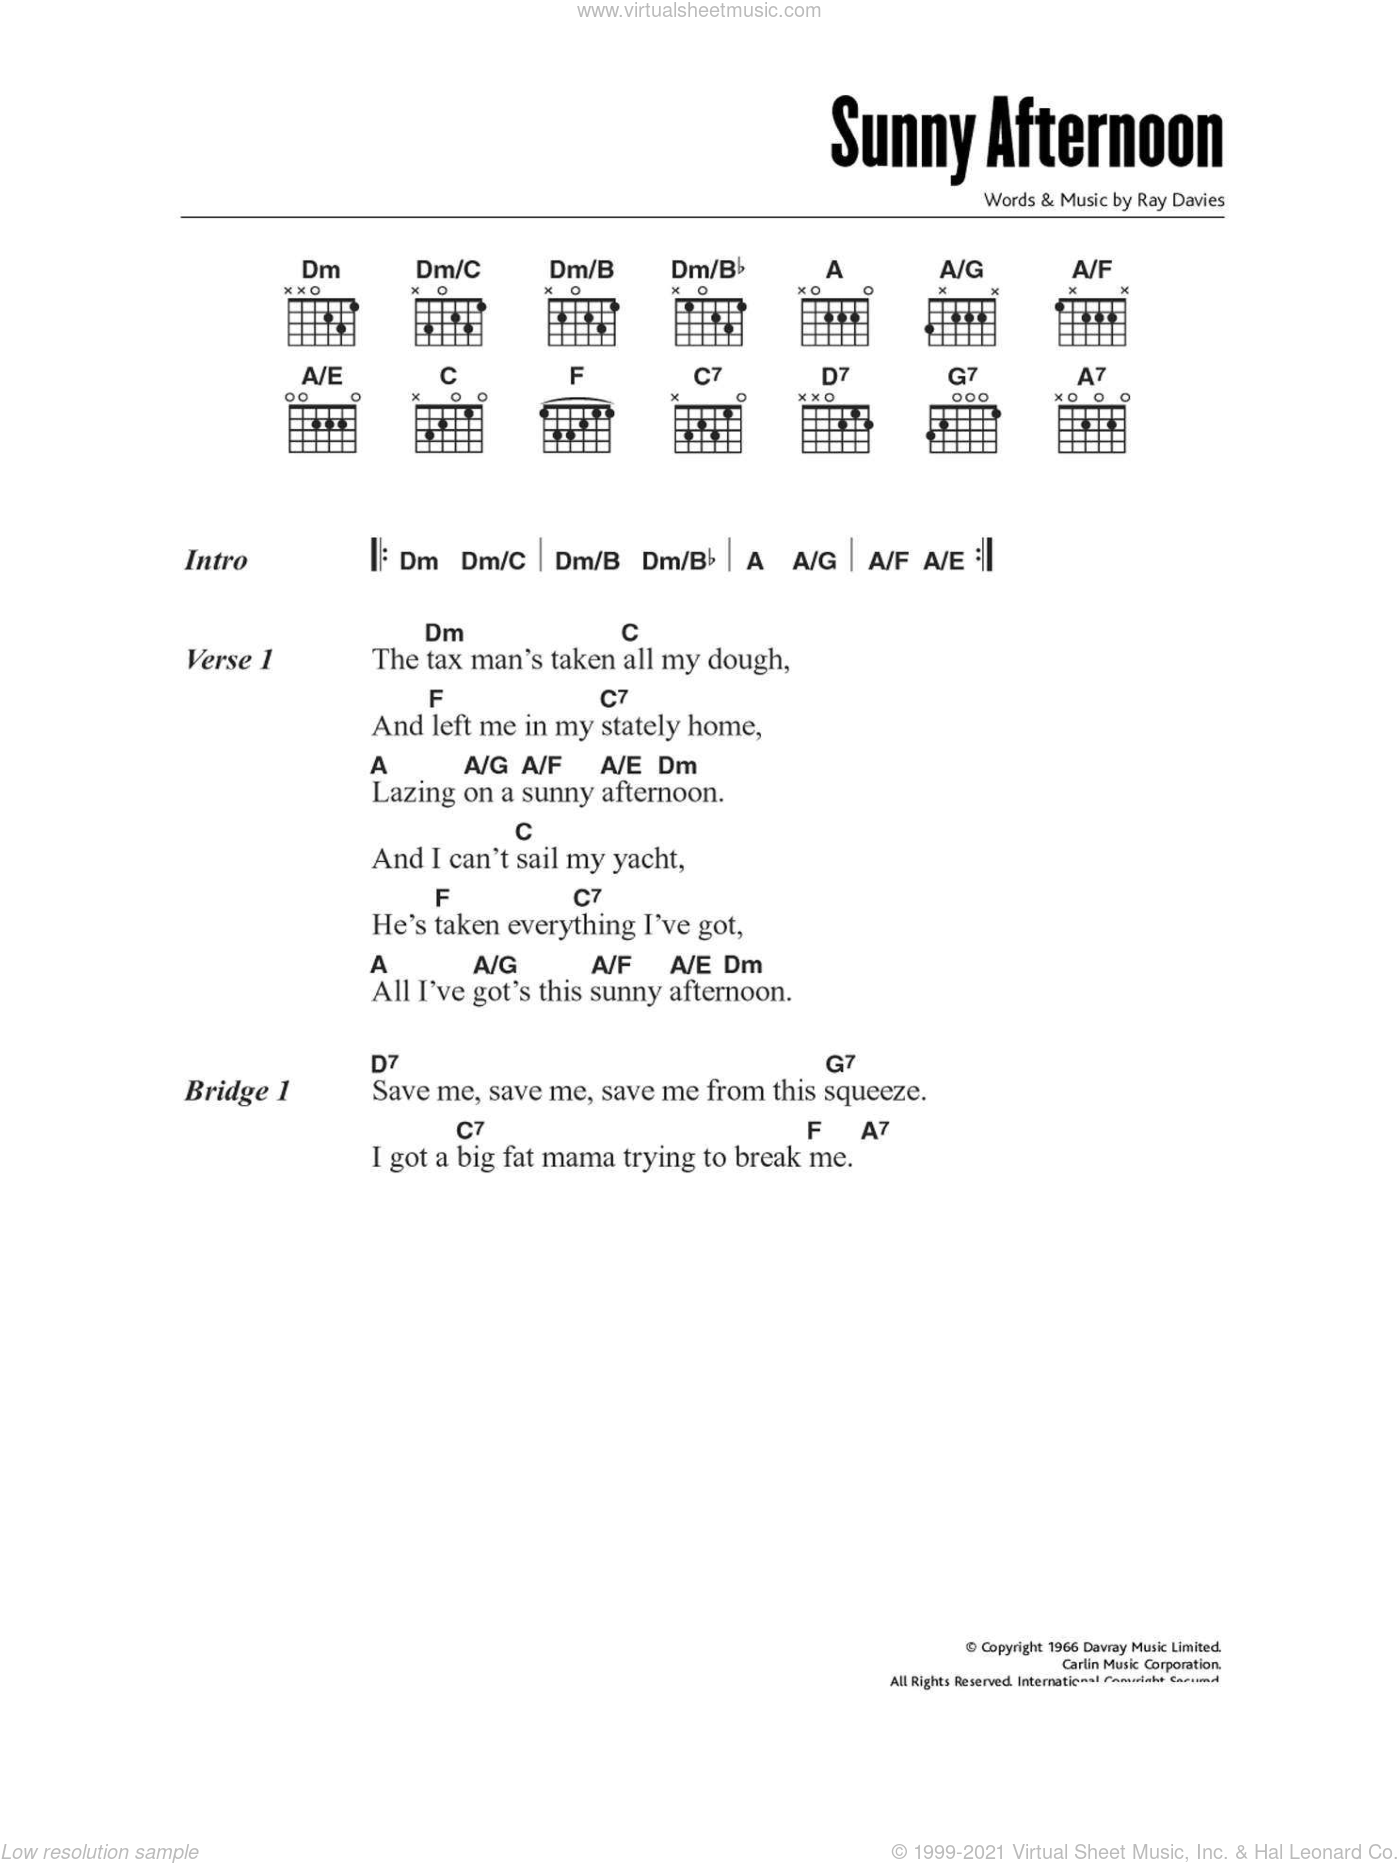 Kinks - Sunny Afternoon sheet music for guitar (chords) [PDF]